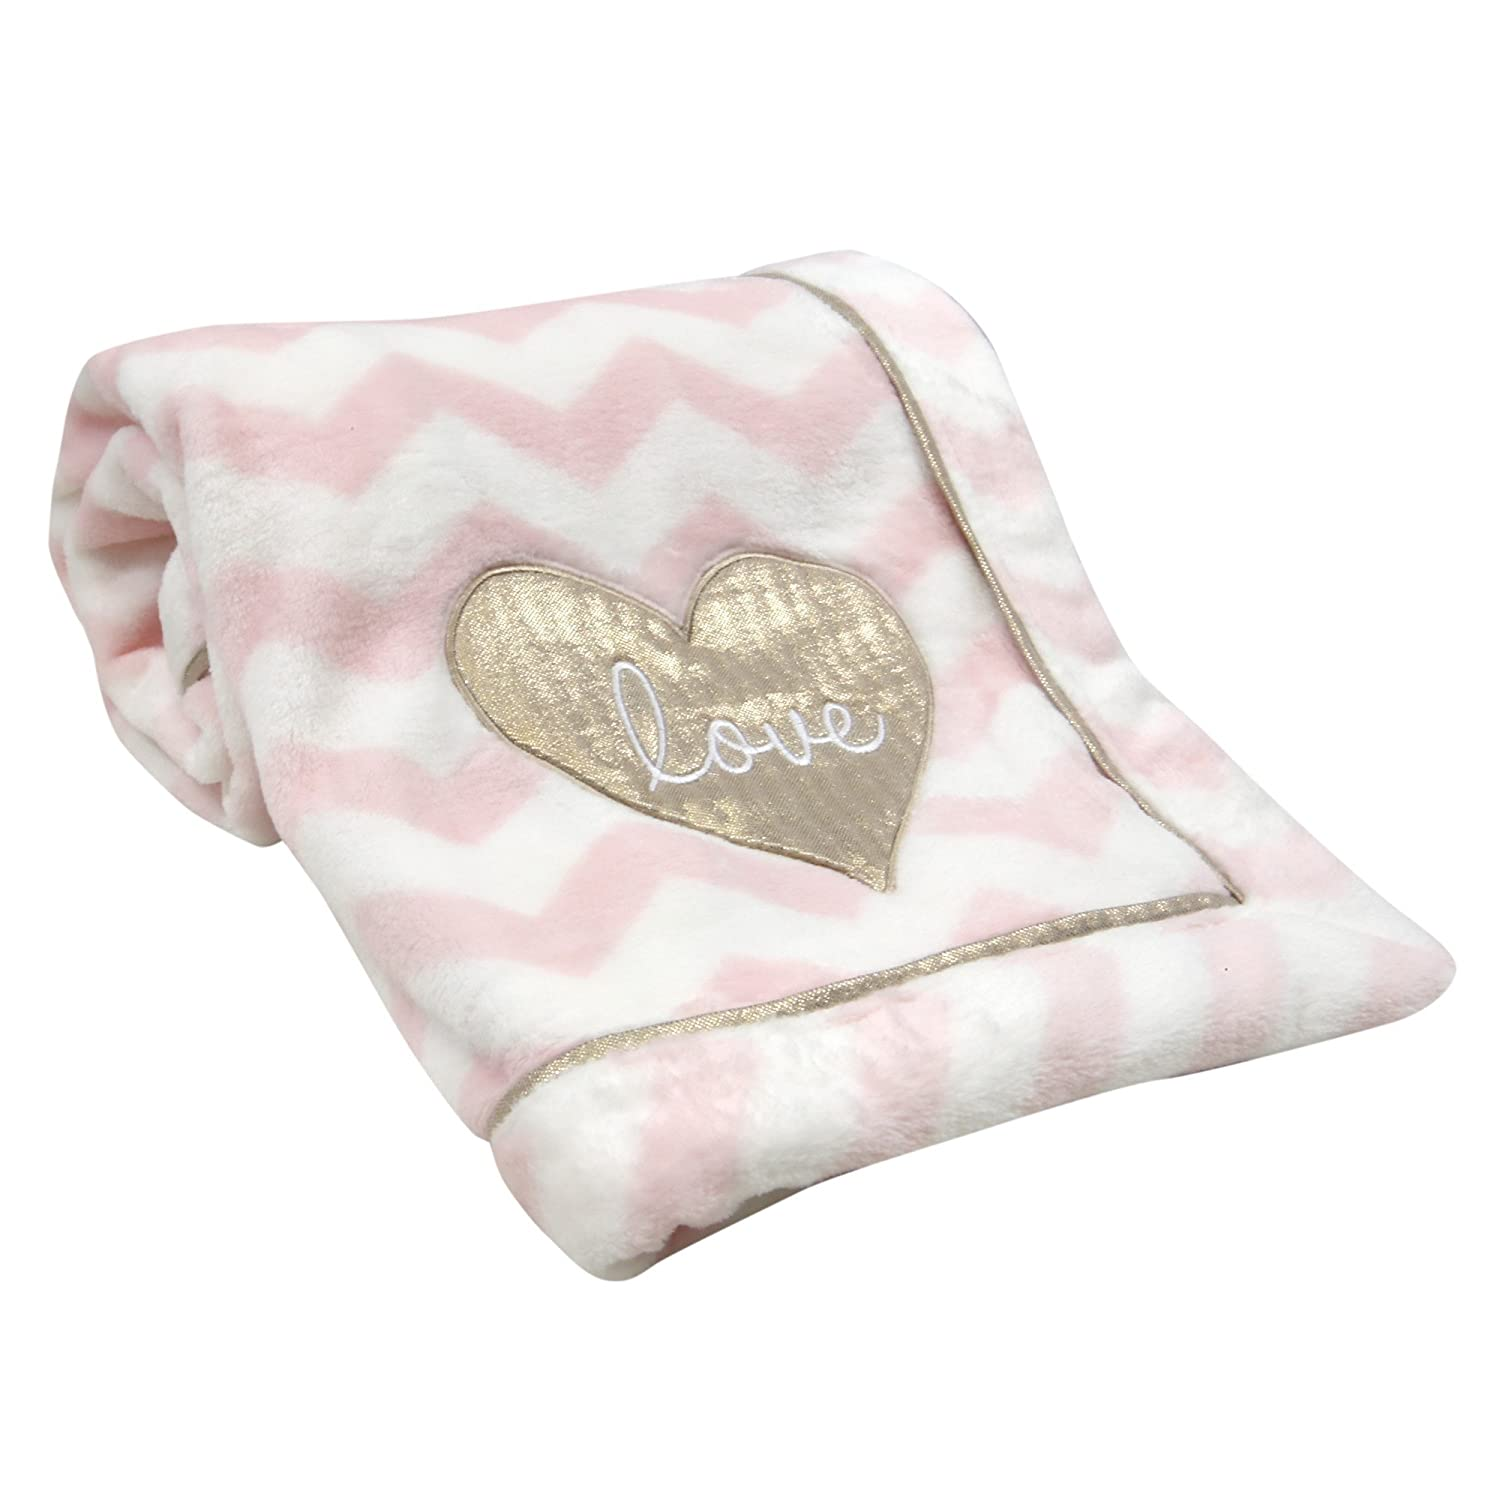 Lambs & Ivy Baby Love Minky Blanket - Pink/White with Gold Love Heart